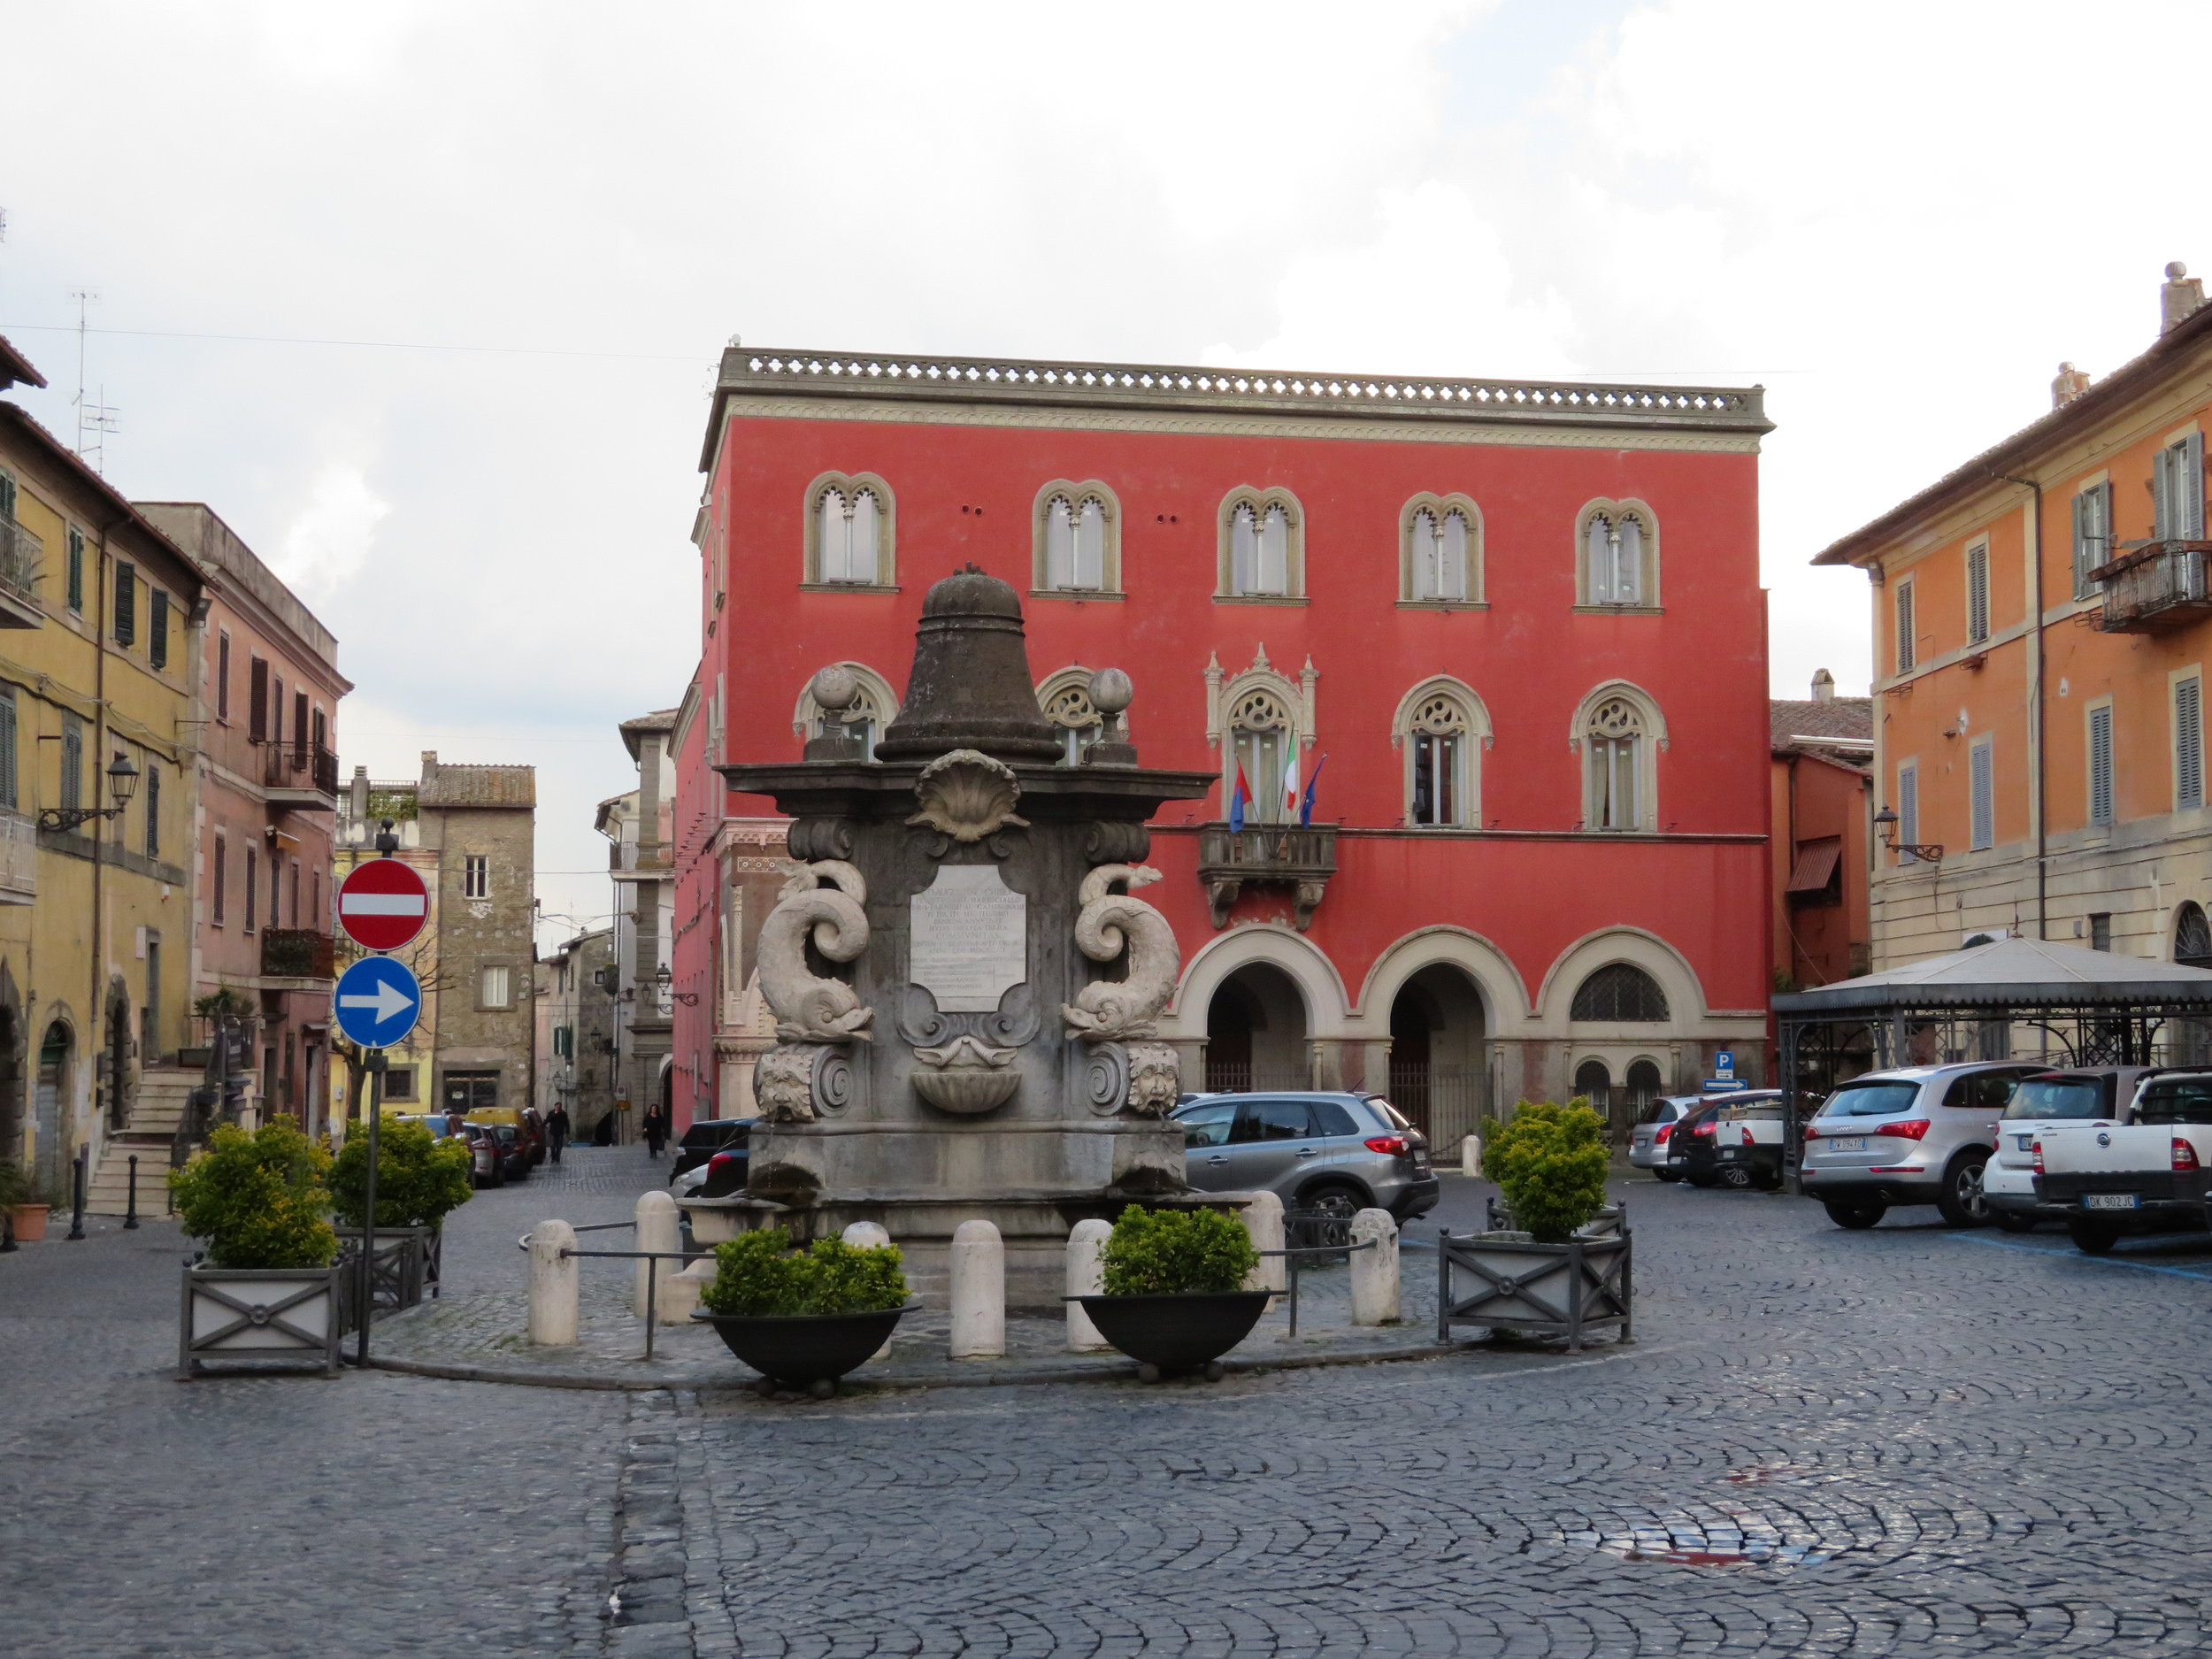 The main plaza in Campagnano's historic district was pretty deserted when we left in the morning. Italy does not rise early.